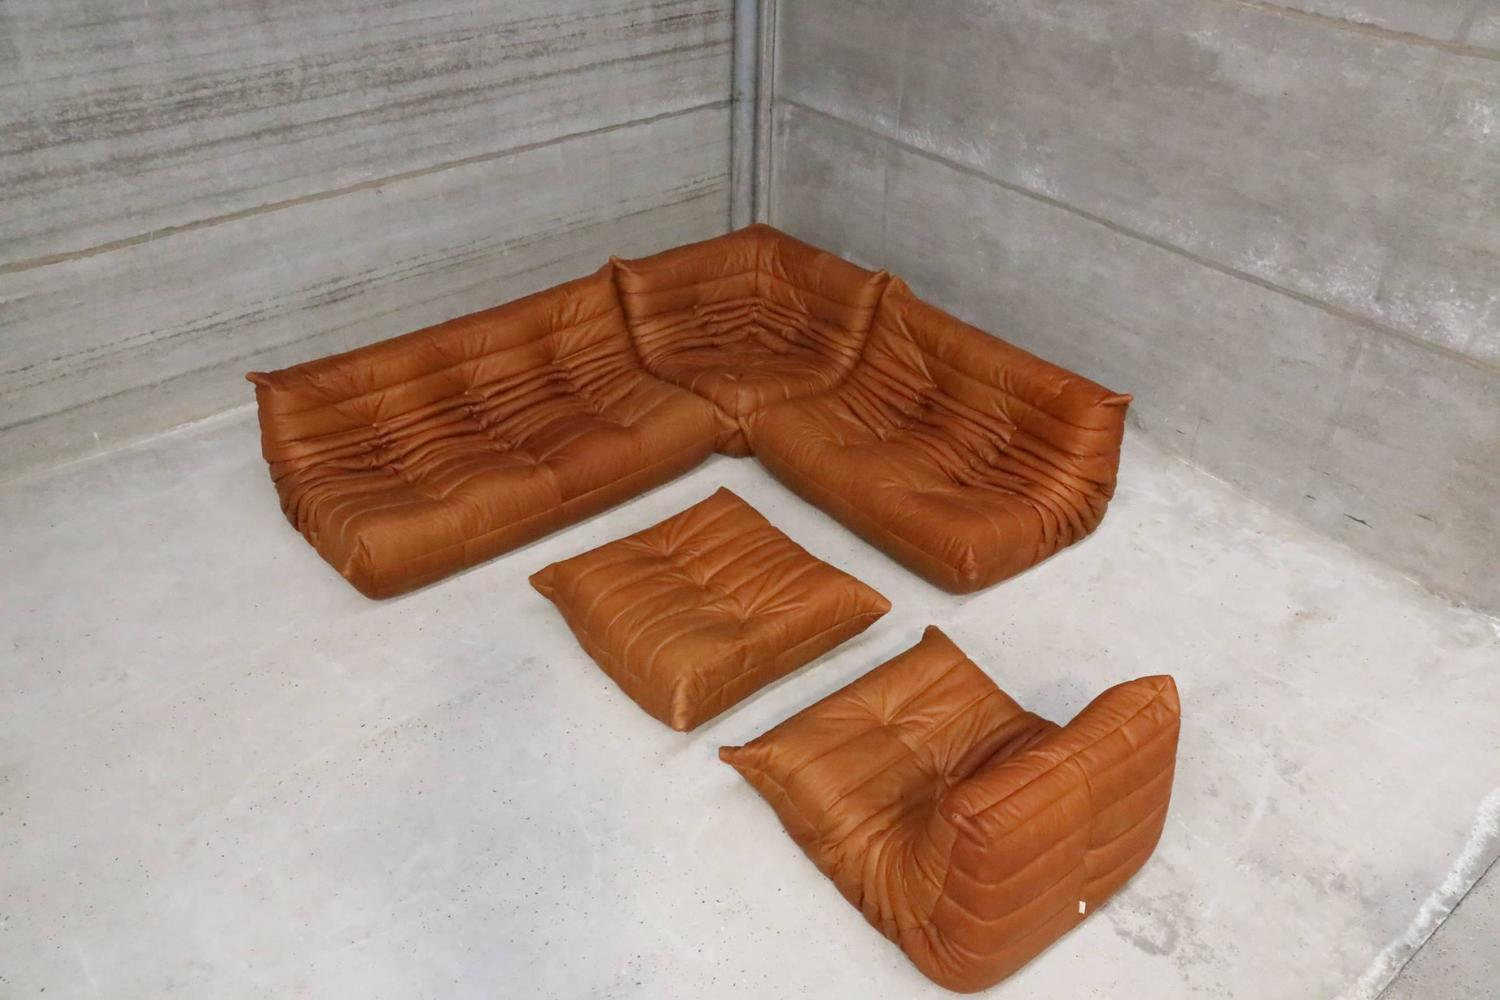 Different Styles Of Sofas : ... Sofa Furniture Pinterest. on sectional different styles of sofas